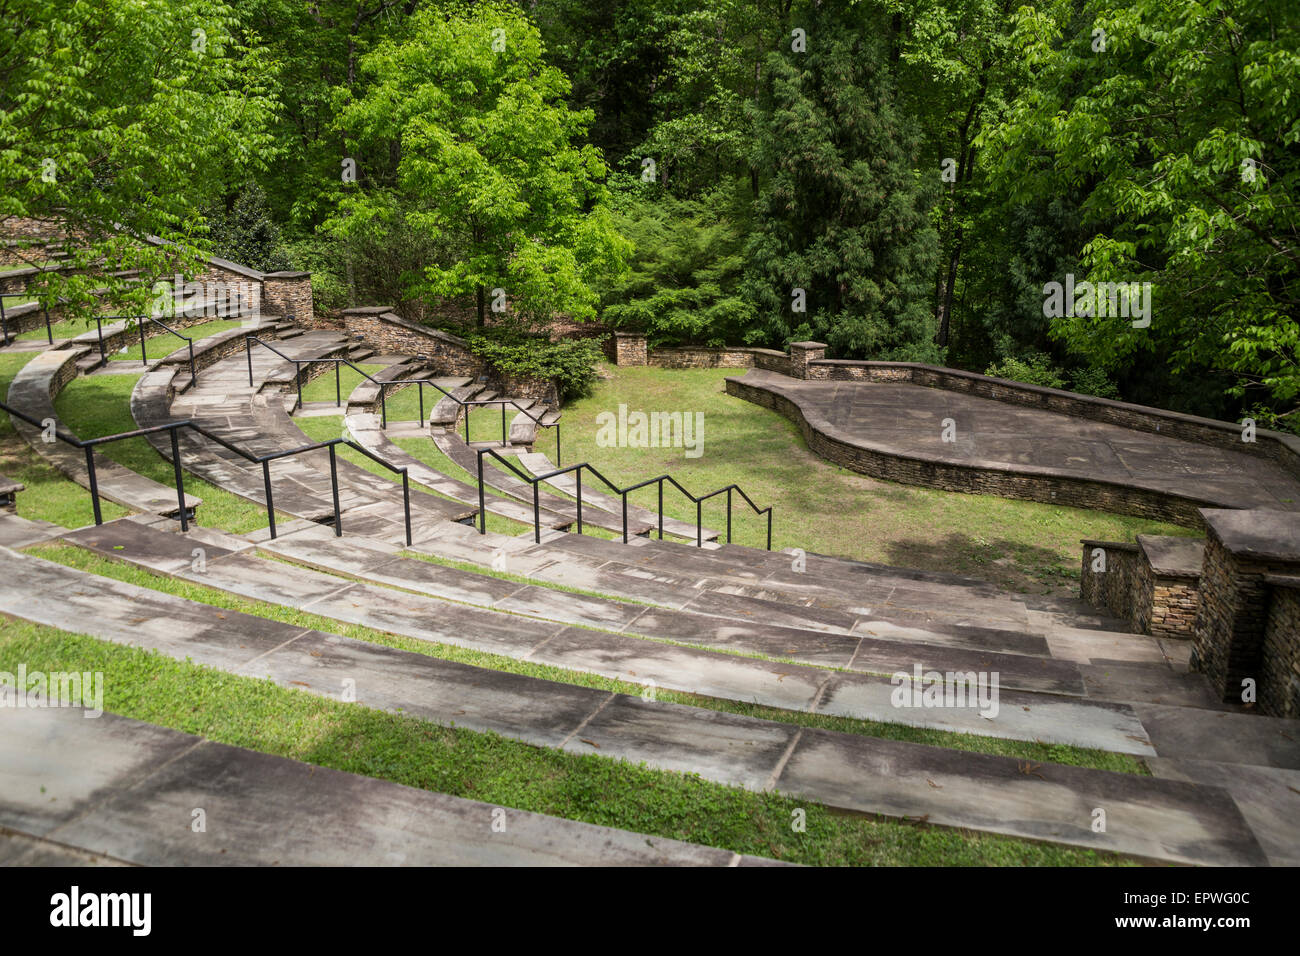 Amphitheater South Carolina Botanical Gardens Clemson South Stock Photo 82925260 Alamy